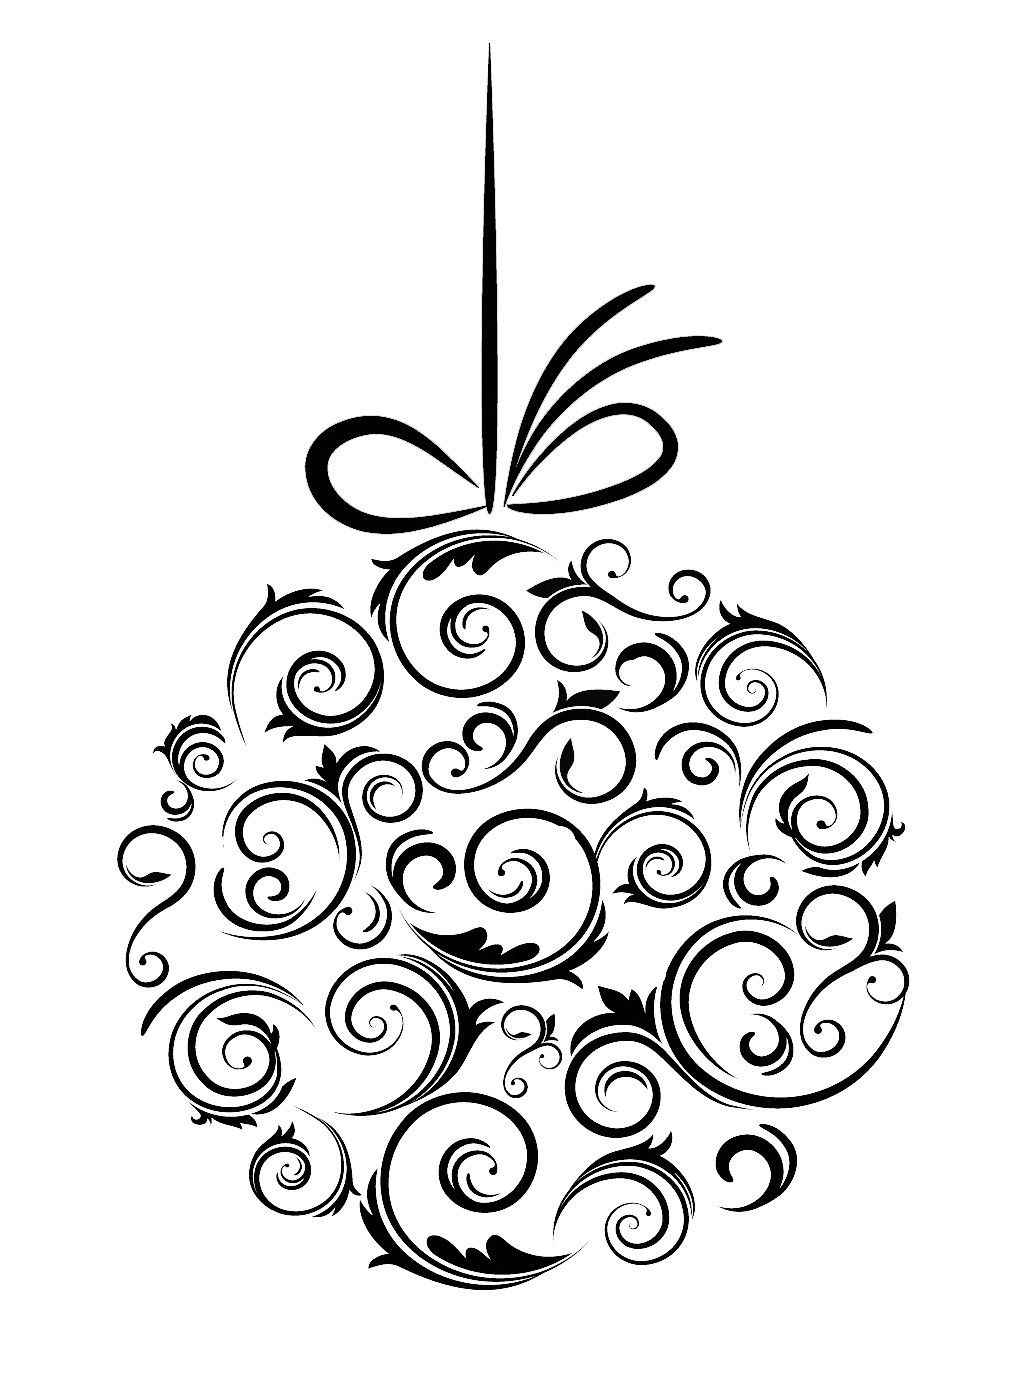 Black And White Christmas Decorations Clipart.